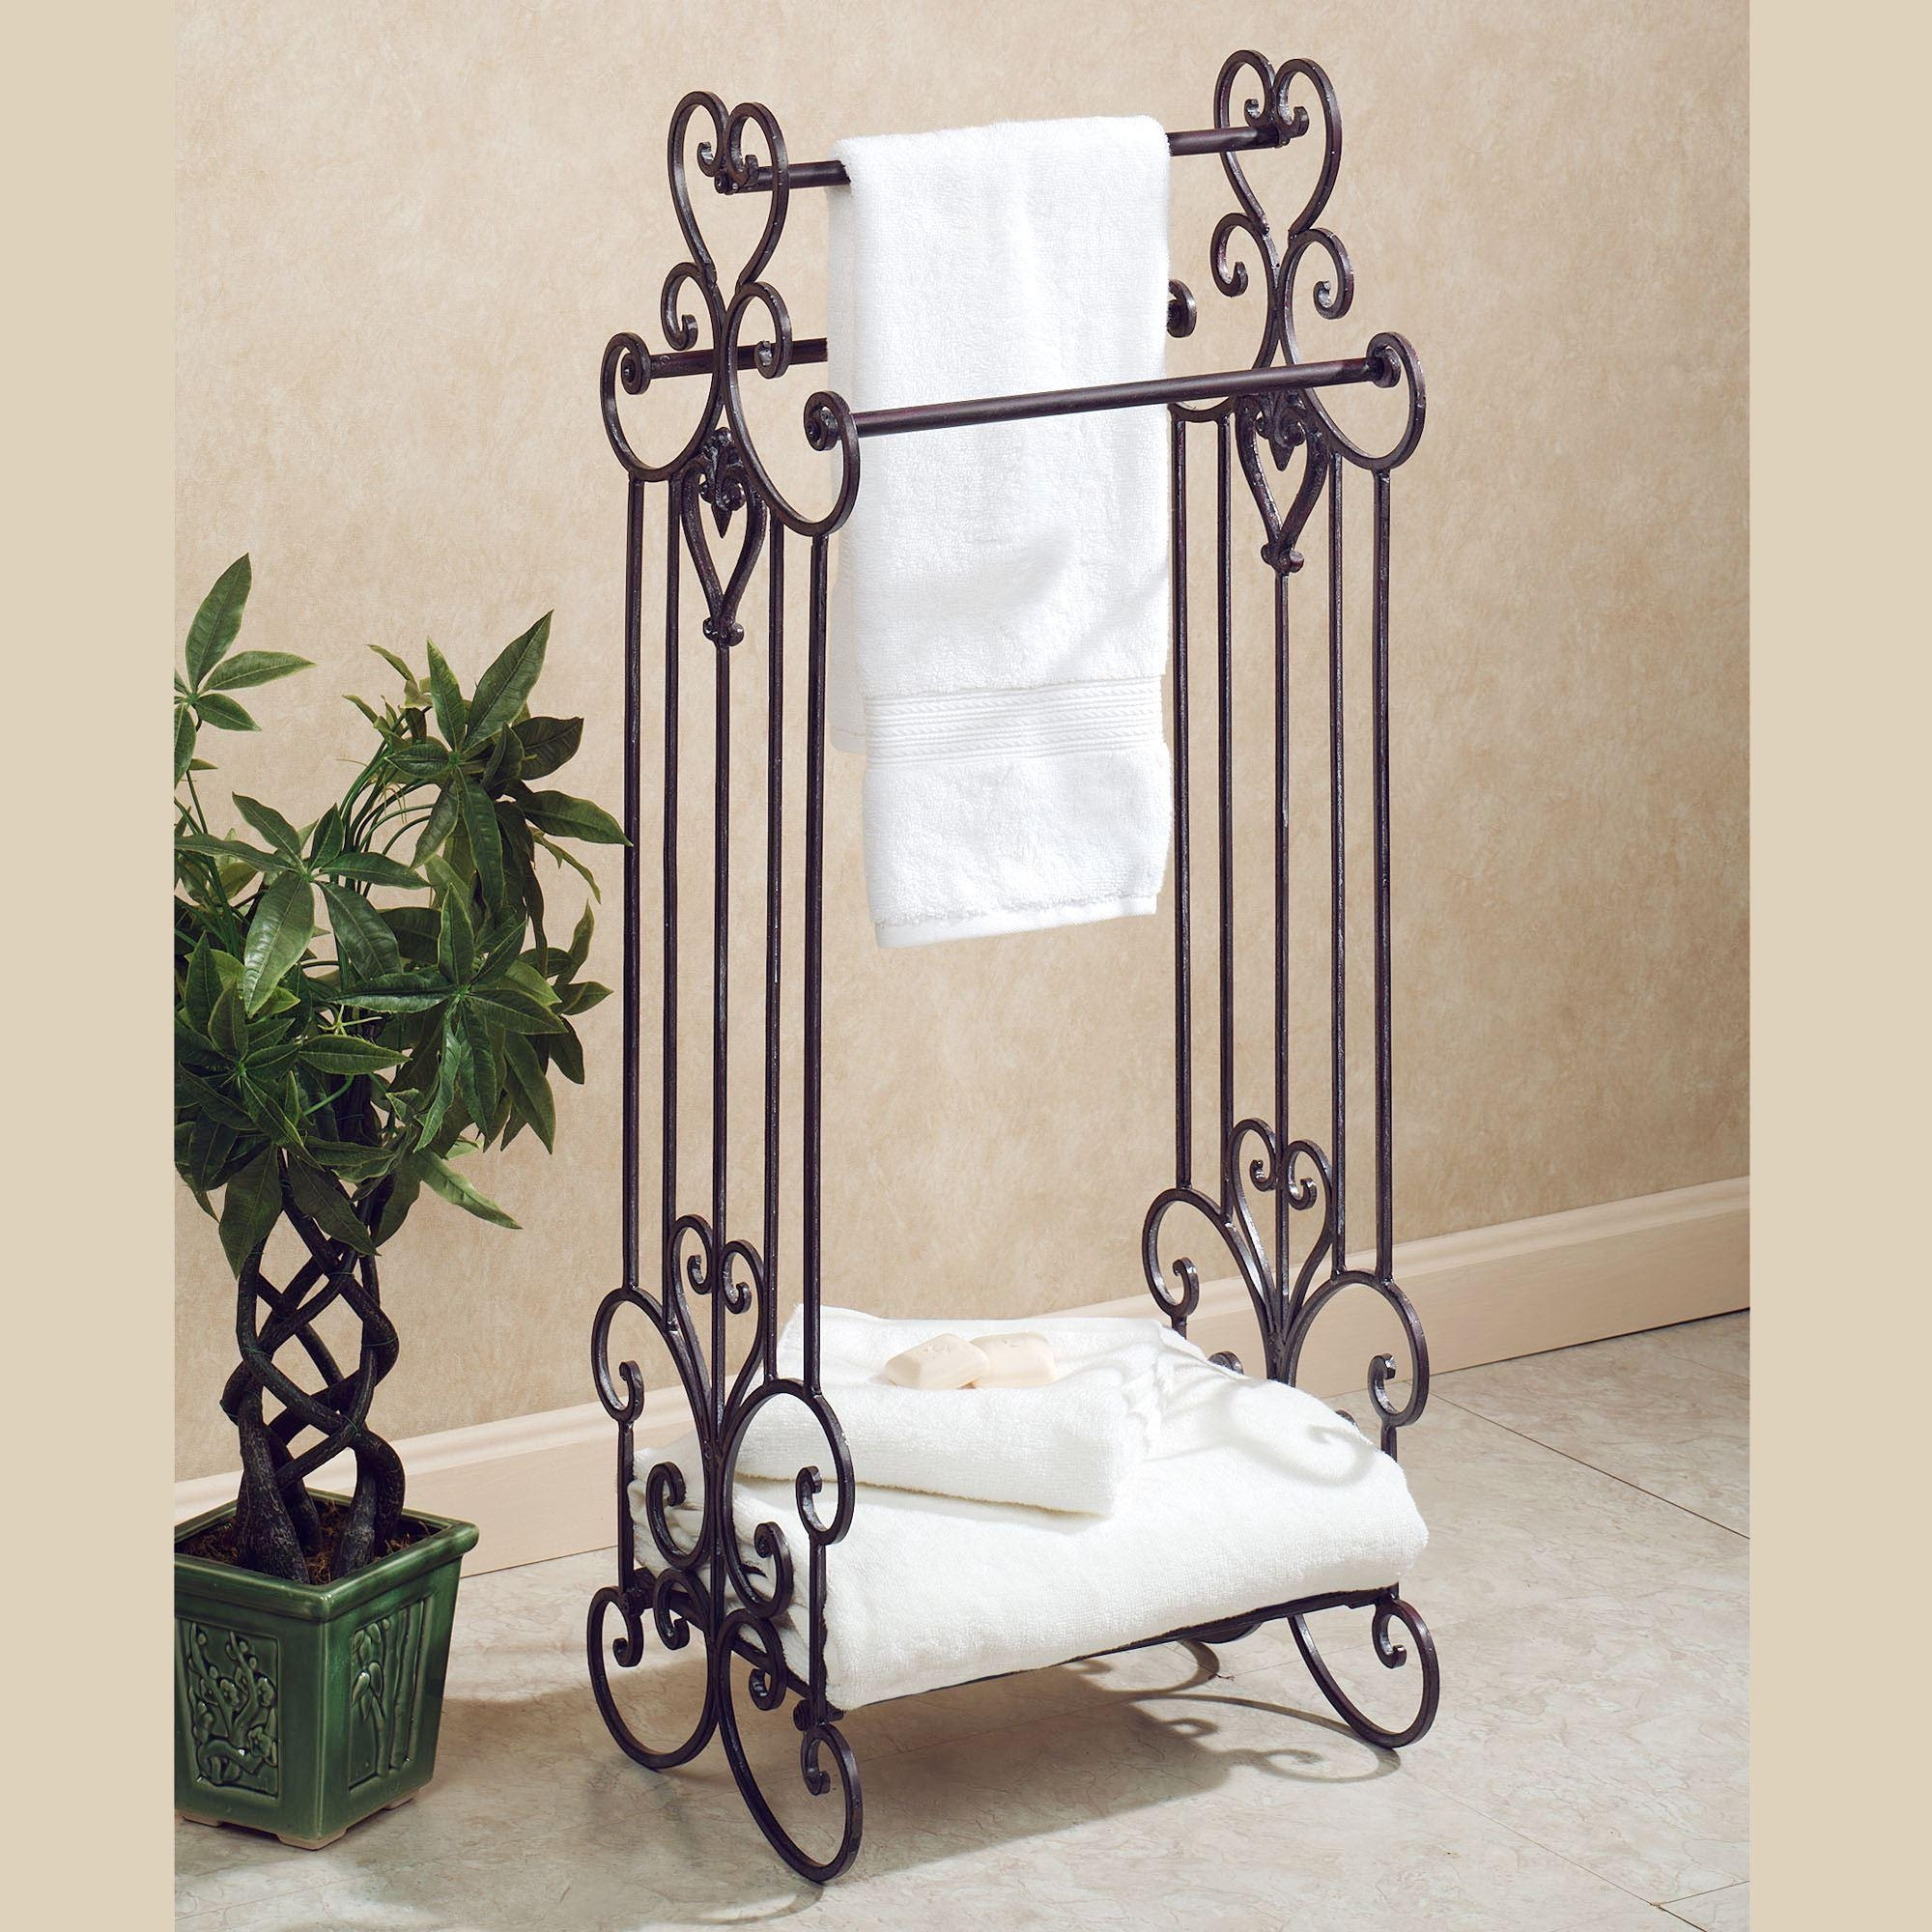 Bedroom : Scroll Wall Decor Wrought Iron Wall Decor Silver Metal Pertaining To Wood And Iron Wall Art (Image 2 of 20)